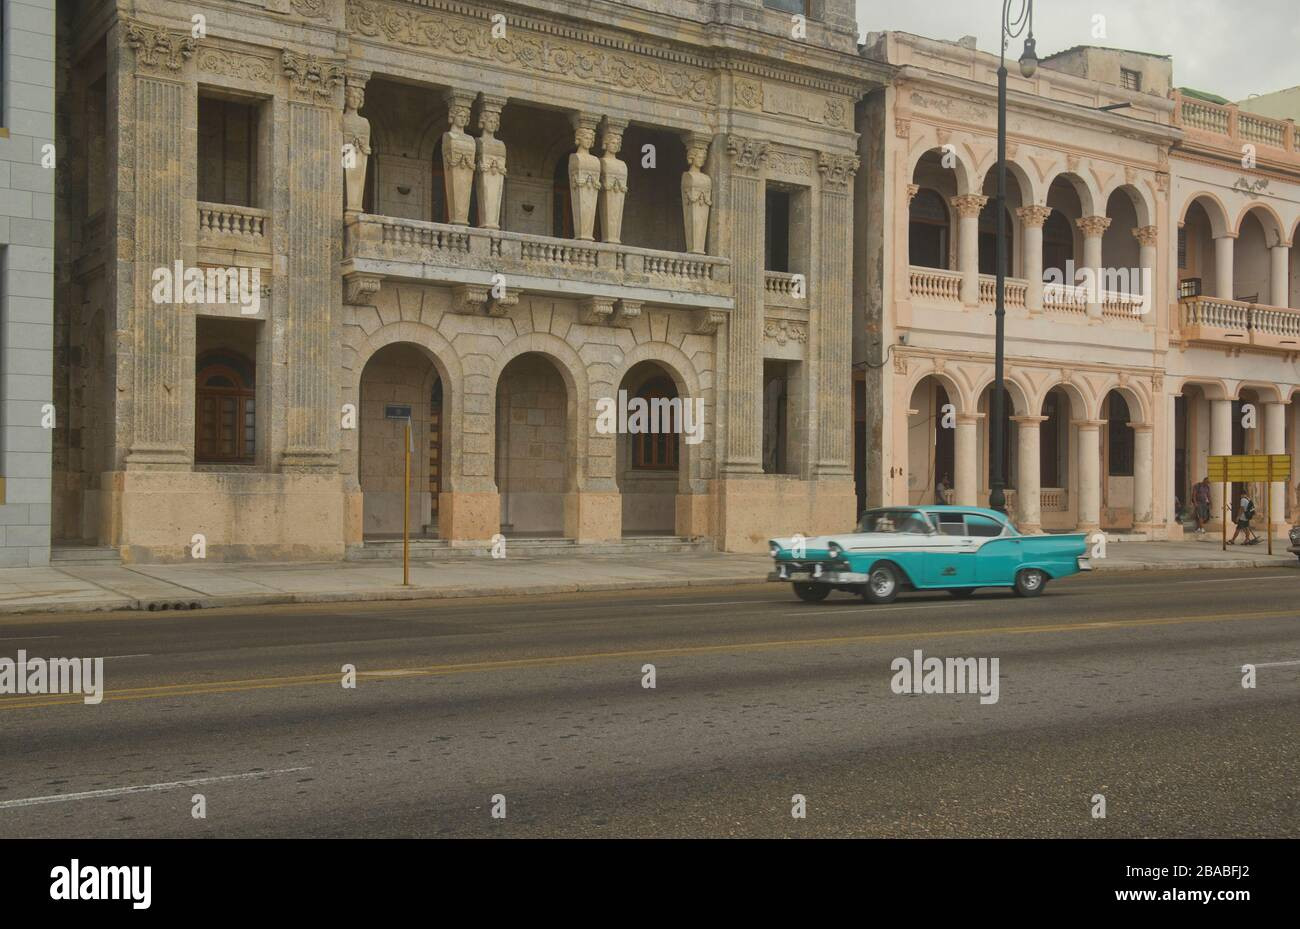 Vintage automobiles and crumbling colonial architecture, Havana, Cuba Stock Photo